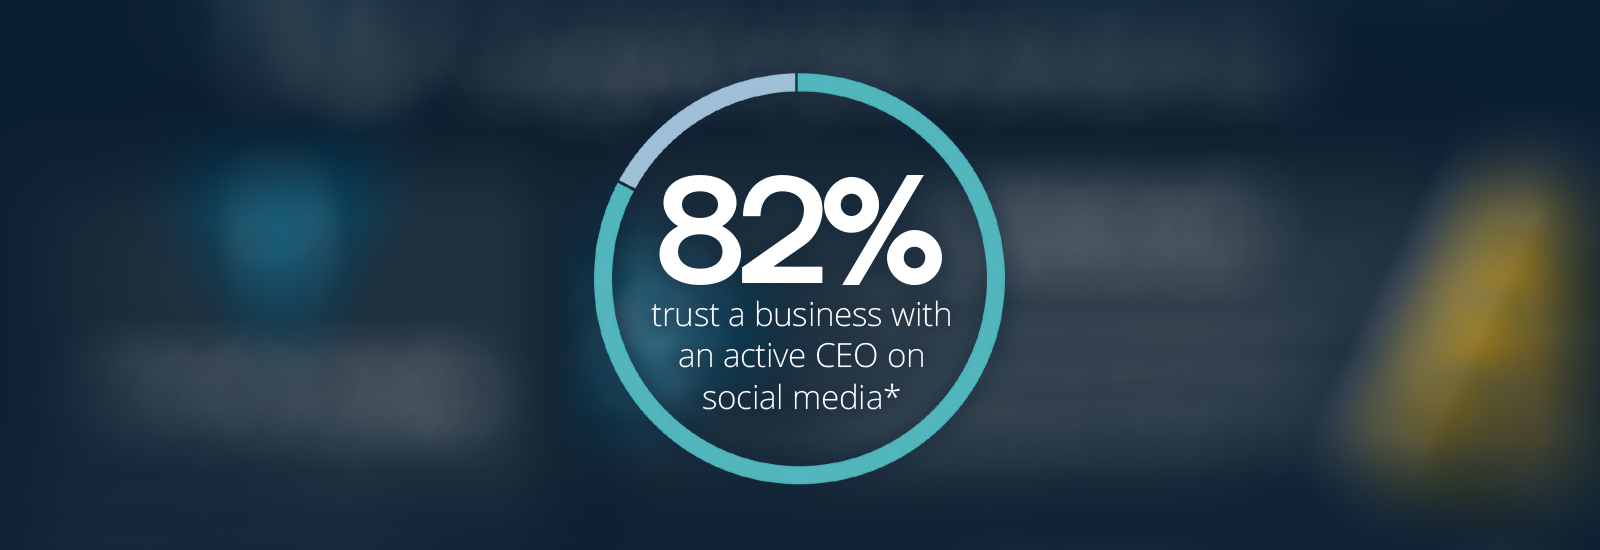 82% trust a business with an active CEO